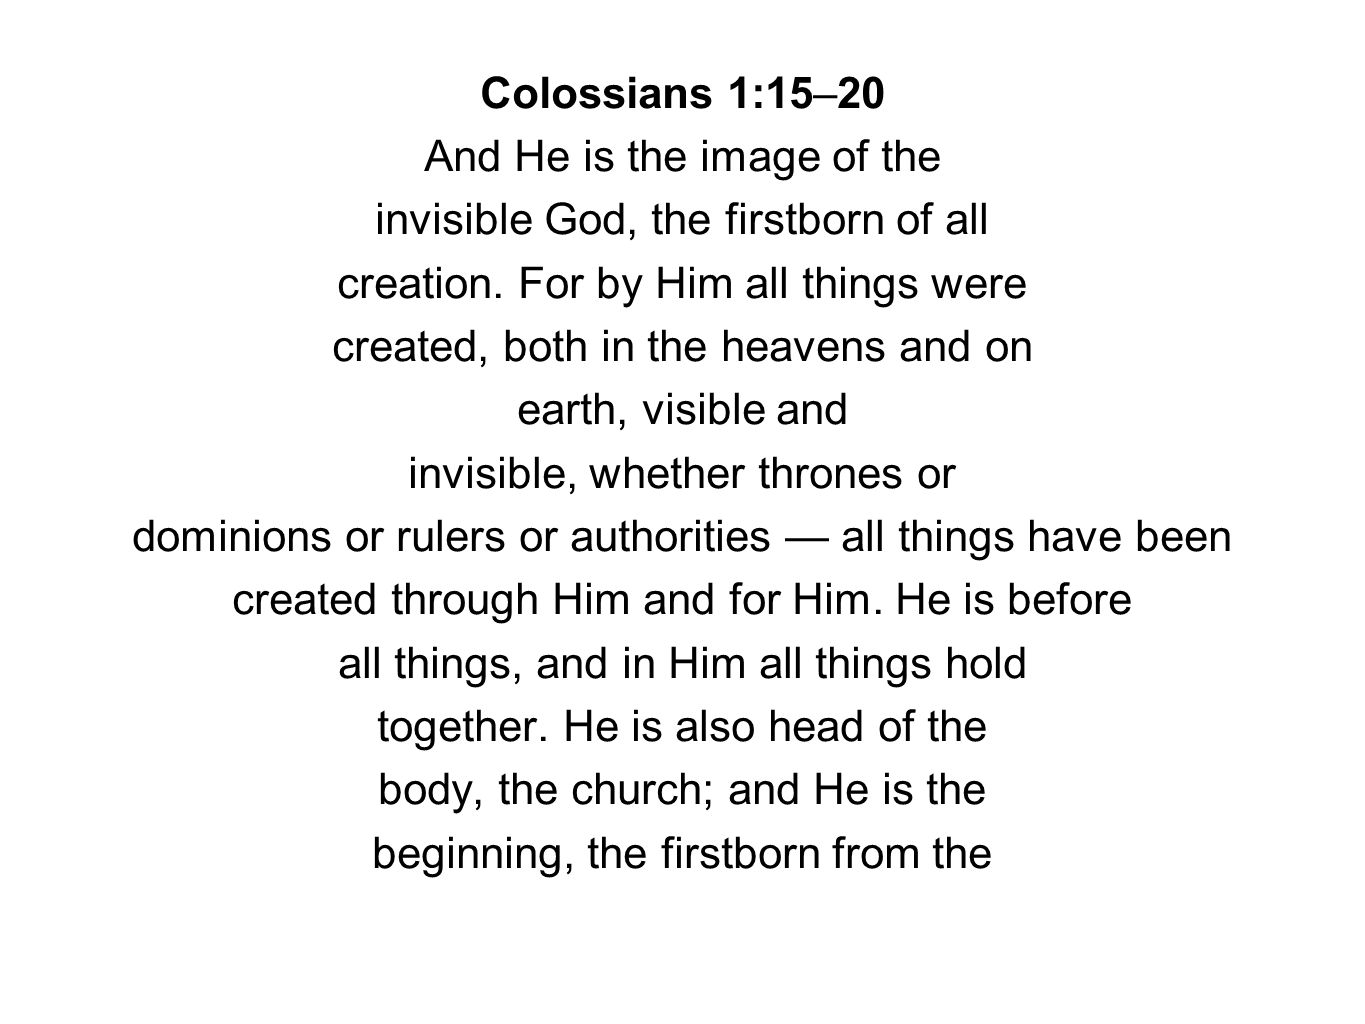 Colossians 1:15–20 And He is the image of the invisible God, the firstborn of all creation.